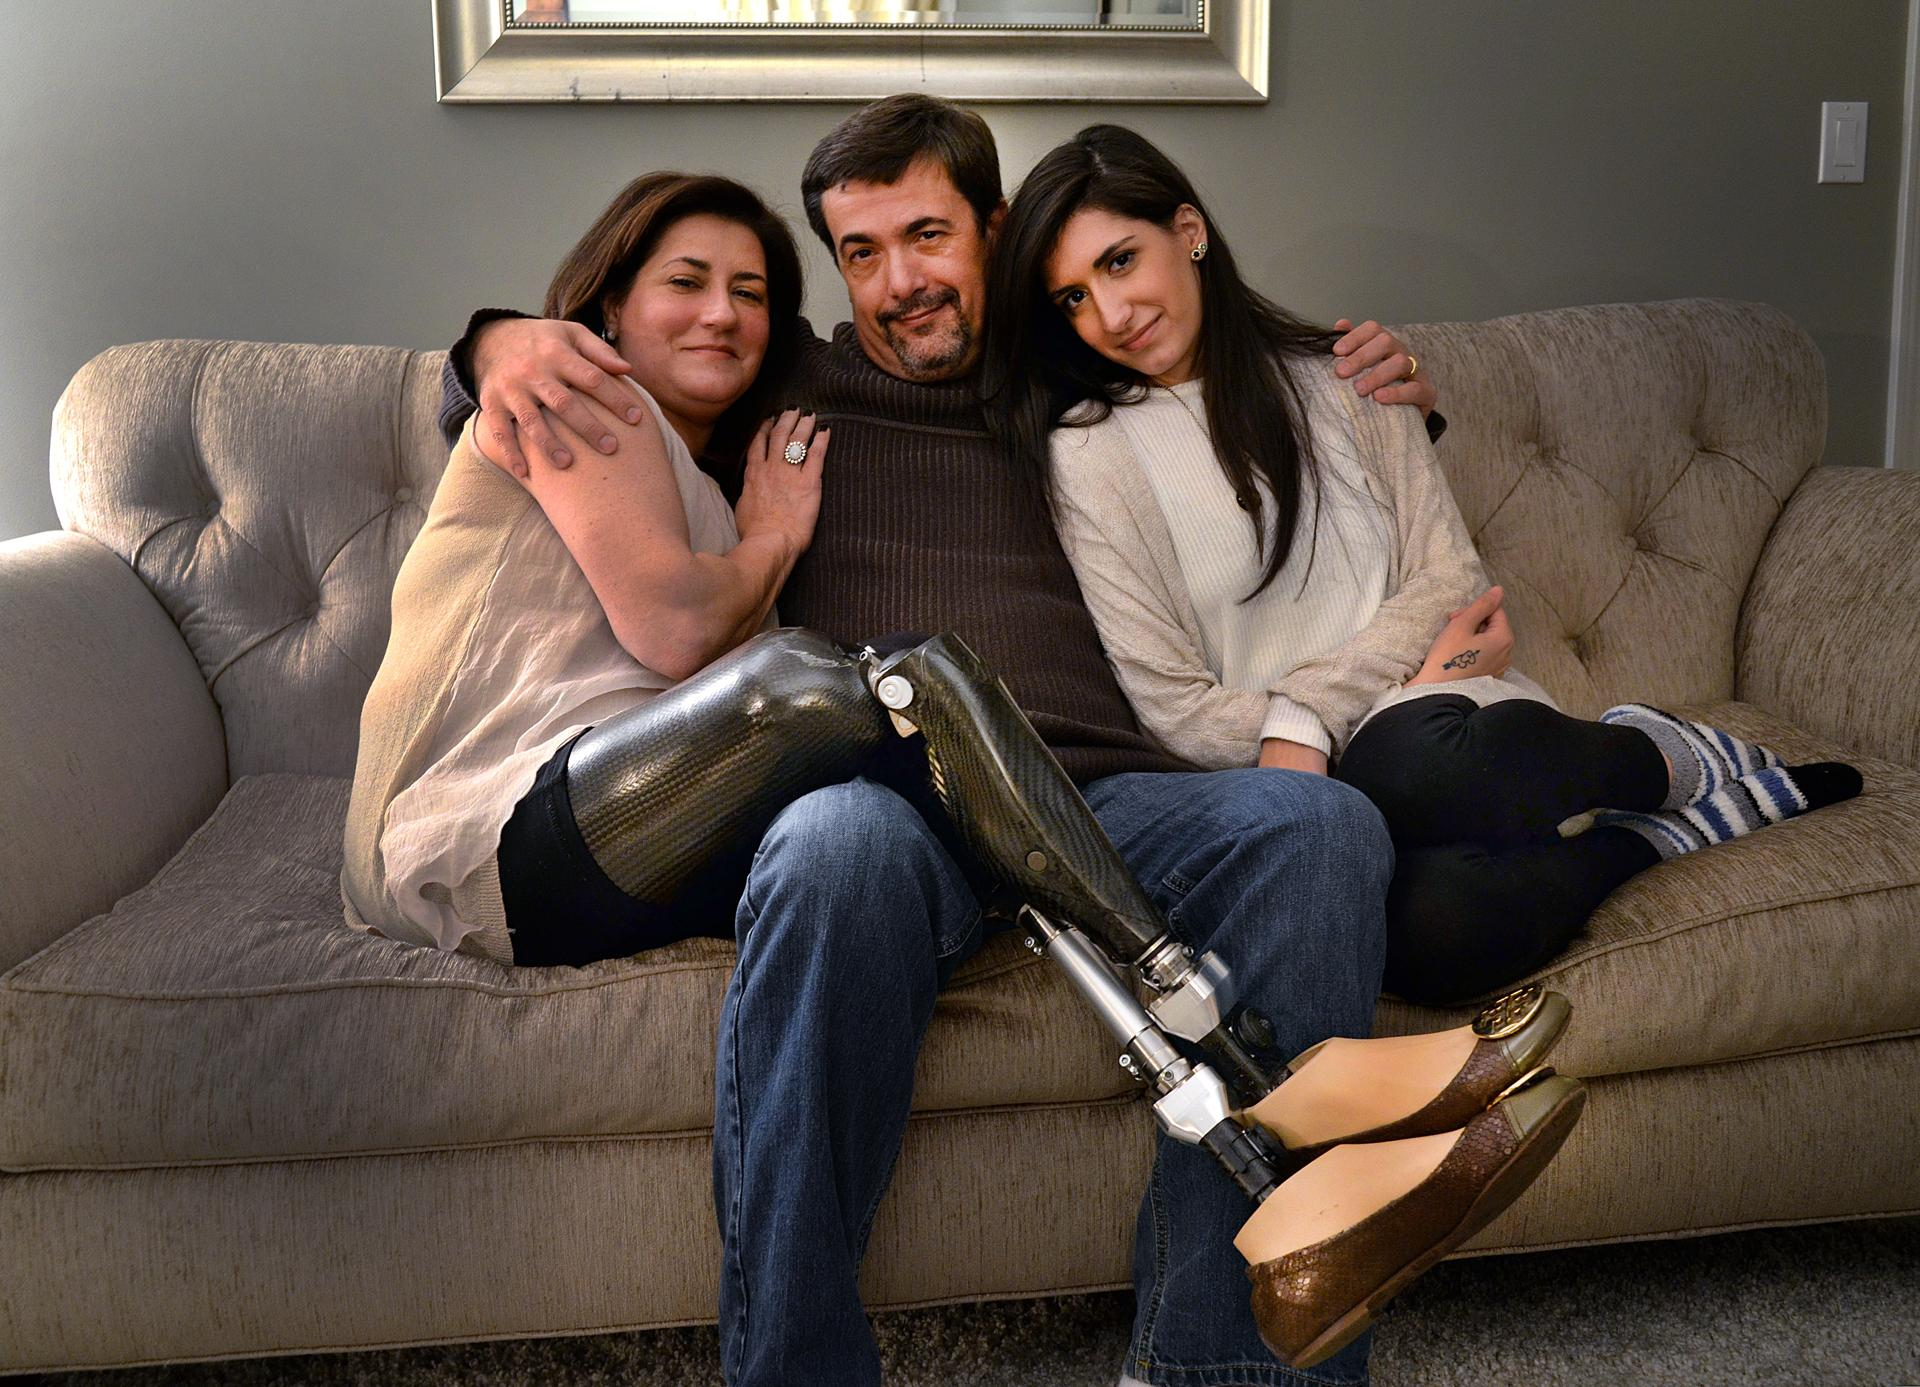 Celeste and Kevin Corcoran, along with their daughter Sydney, are focused on building their new home.